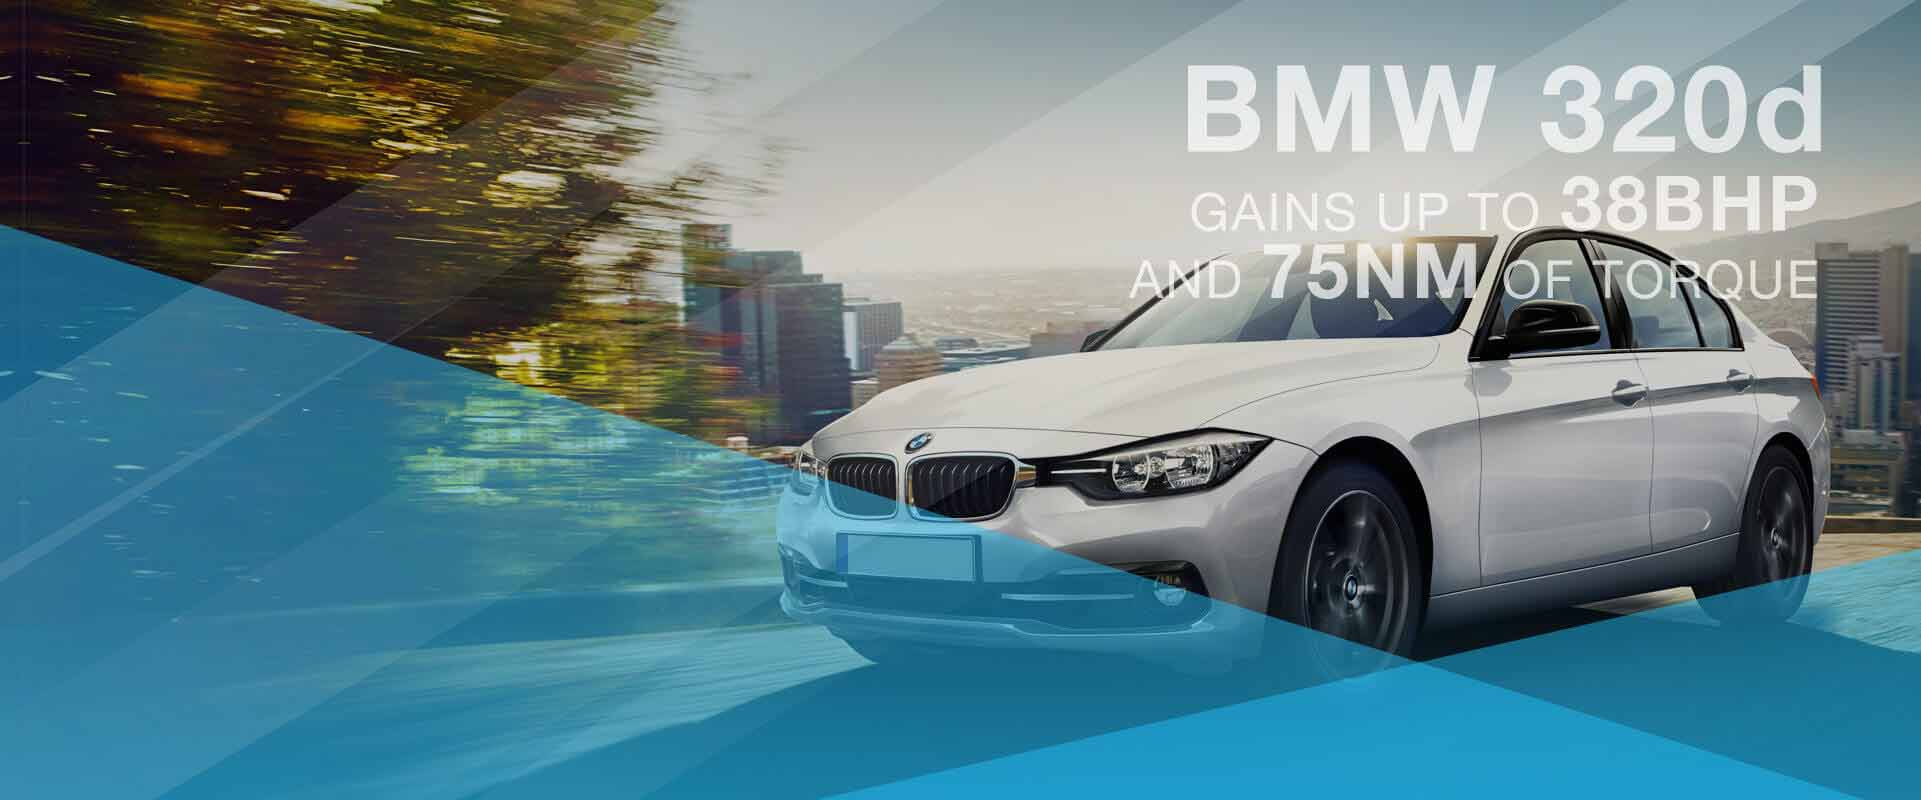 BMW 320d gains up to 38BHP and 75NM of torque